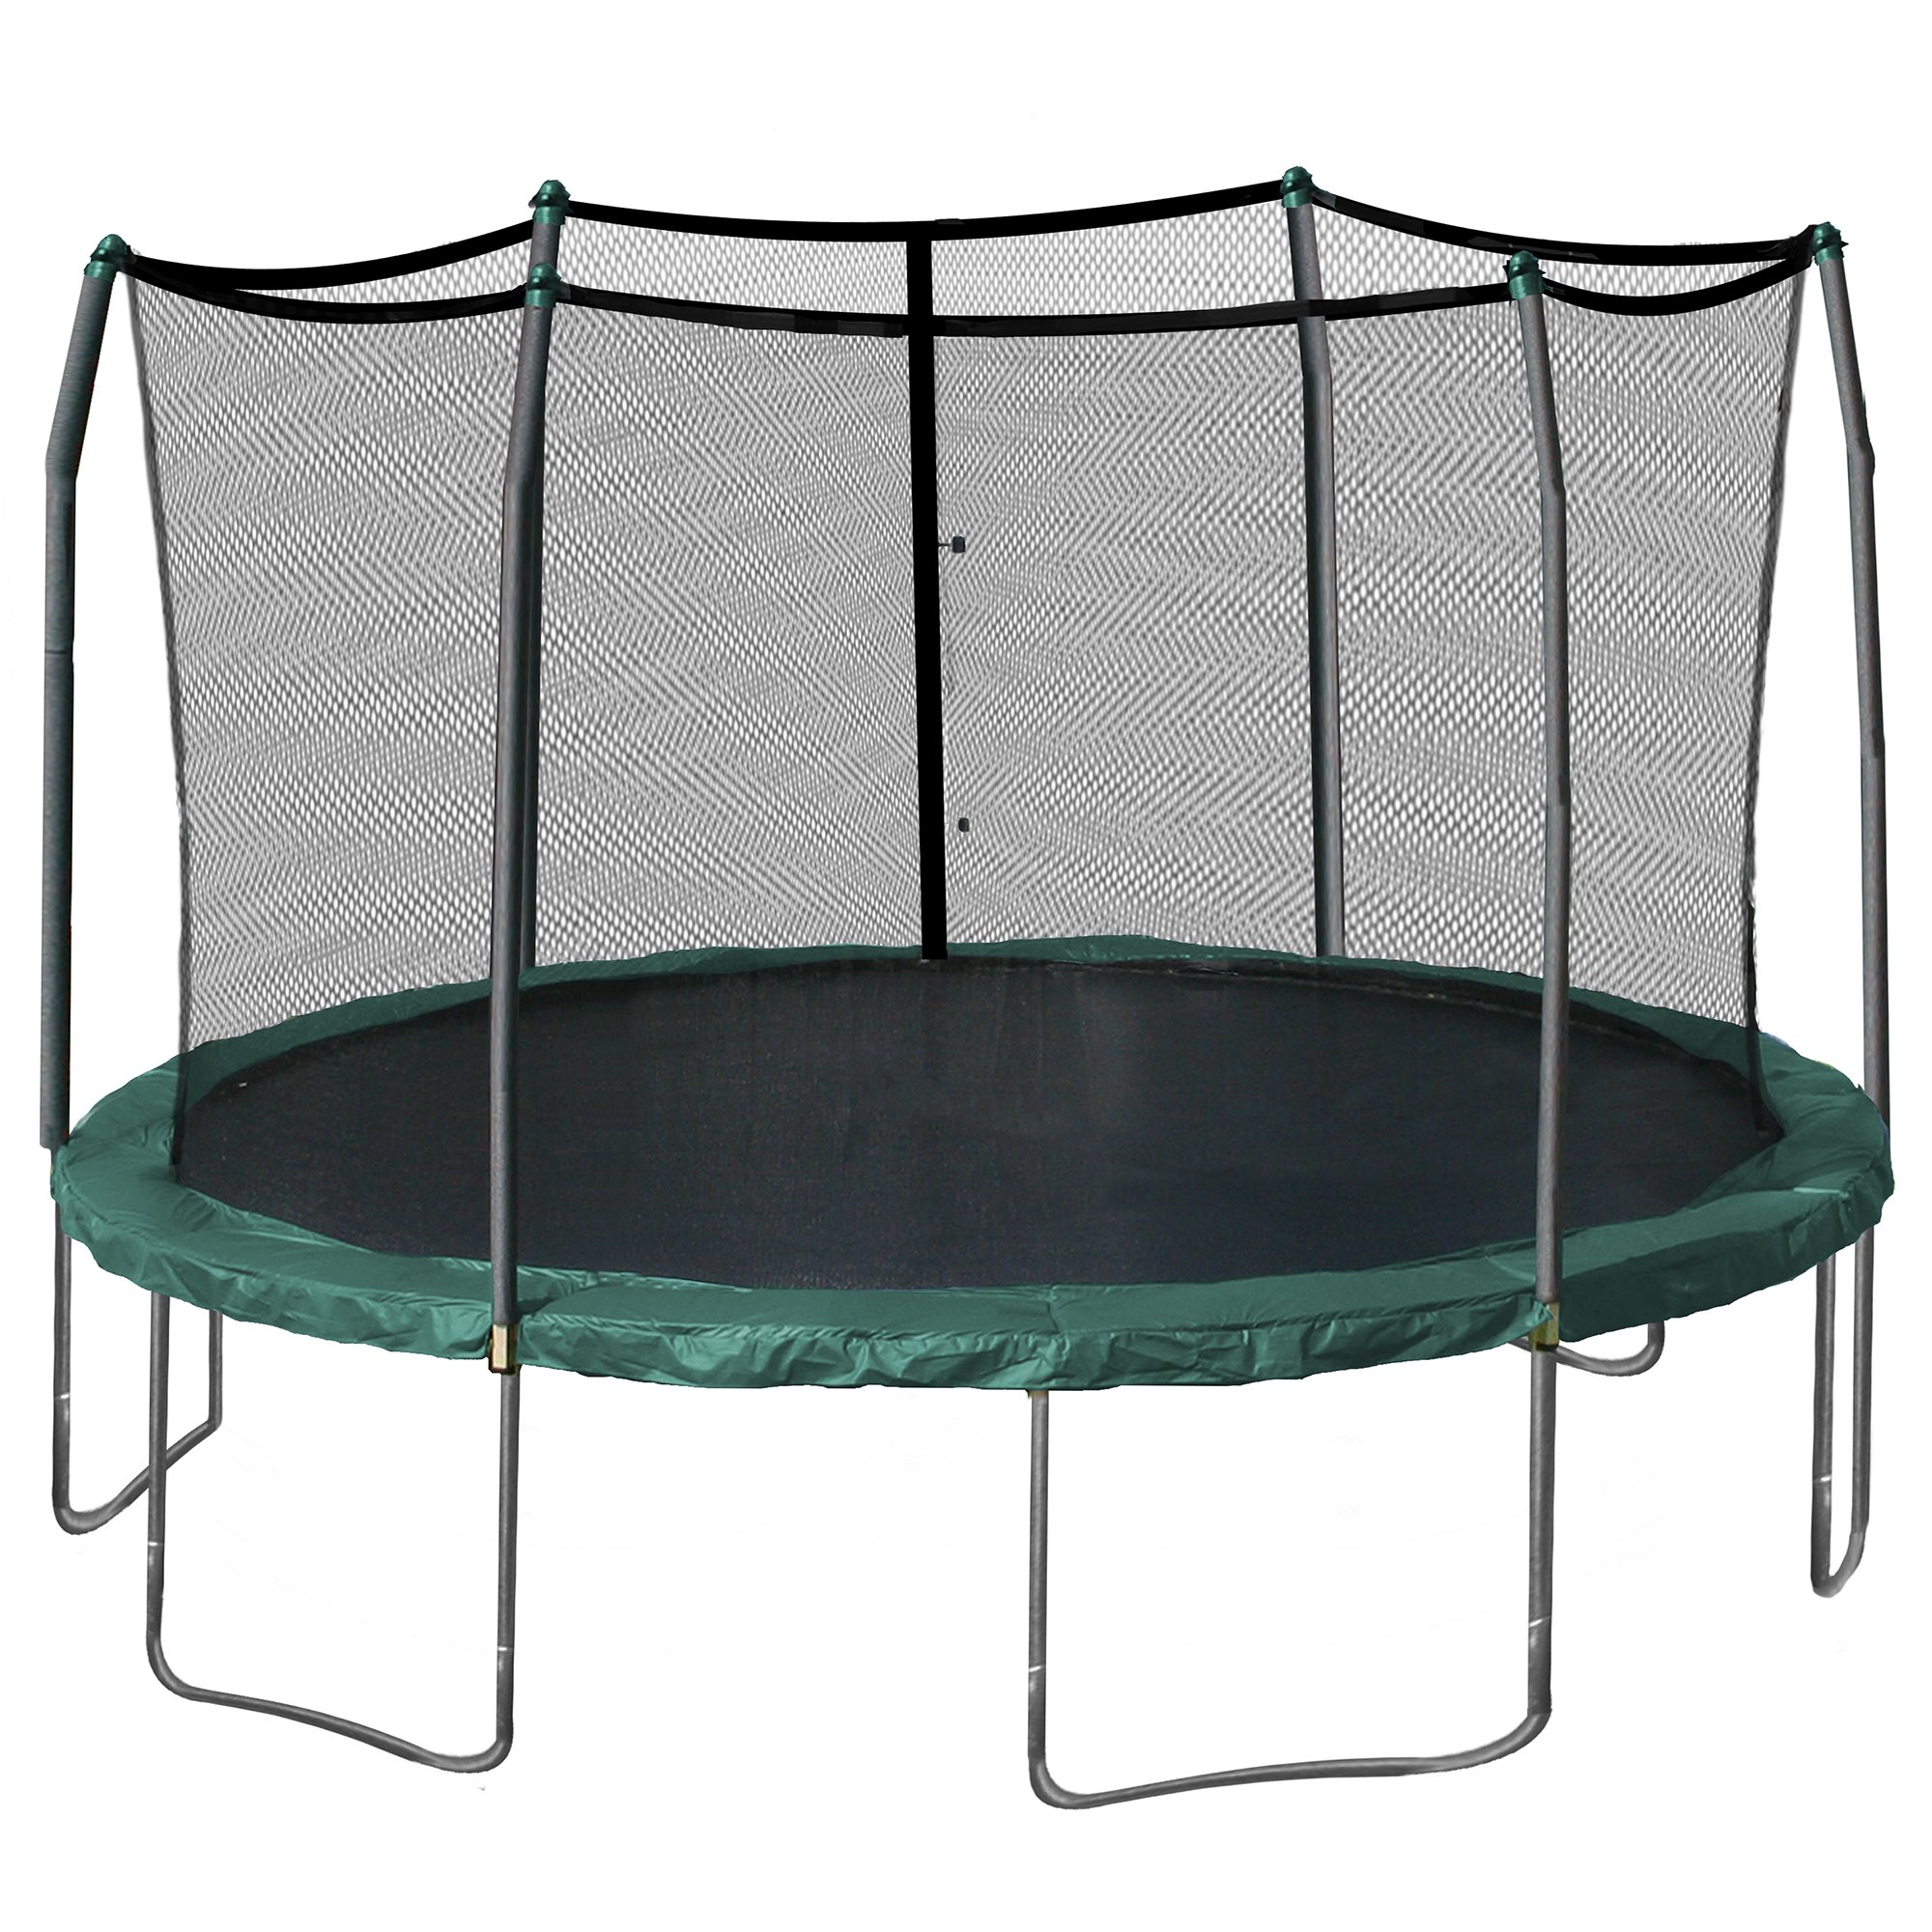 Skywalker 15-Feet Round Trampoline and Enclosure Combo with Spring Pad, Green by Skywalker Trampolines